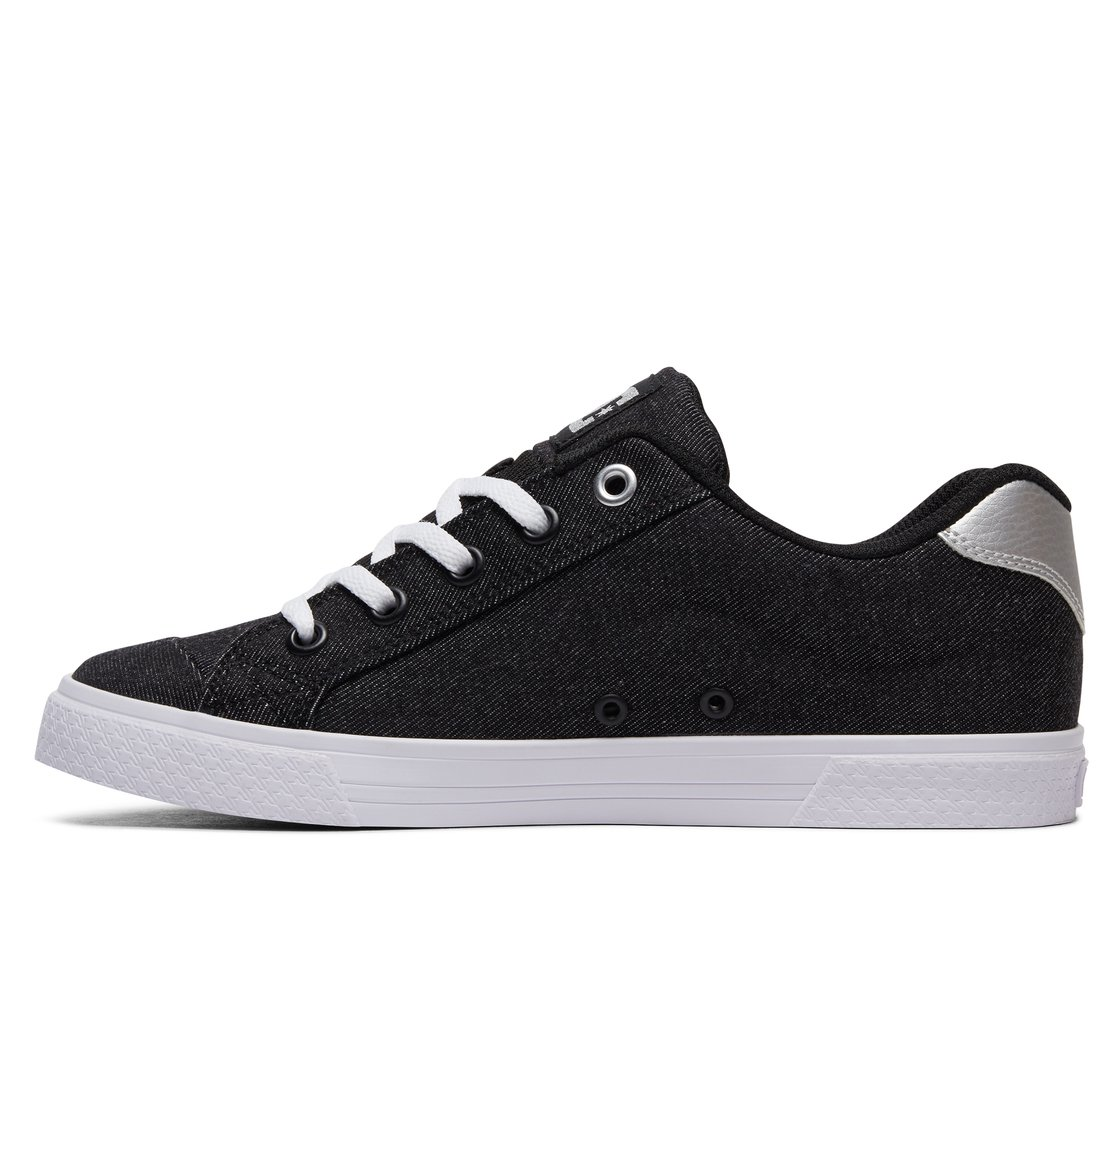 Chaussures DC Shoes Heathrow SE blanches femme